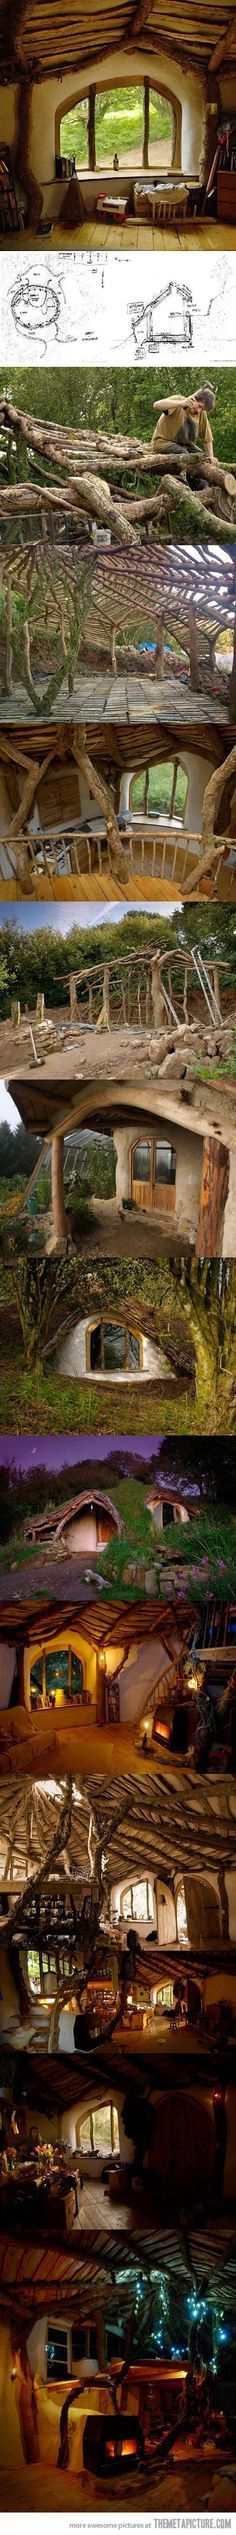 Nid douillet -- How to build a Hobbit house